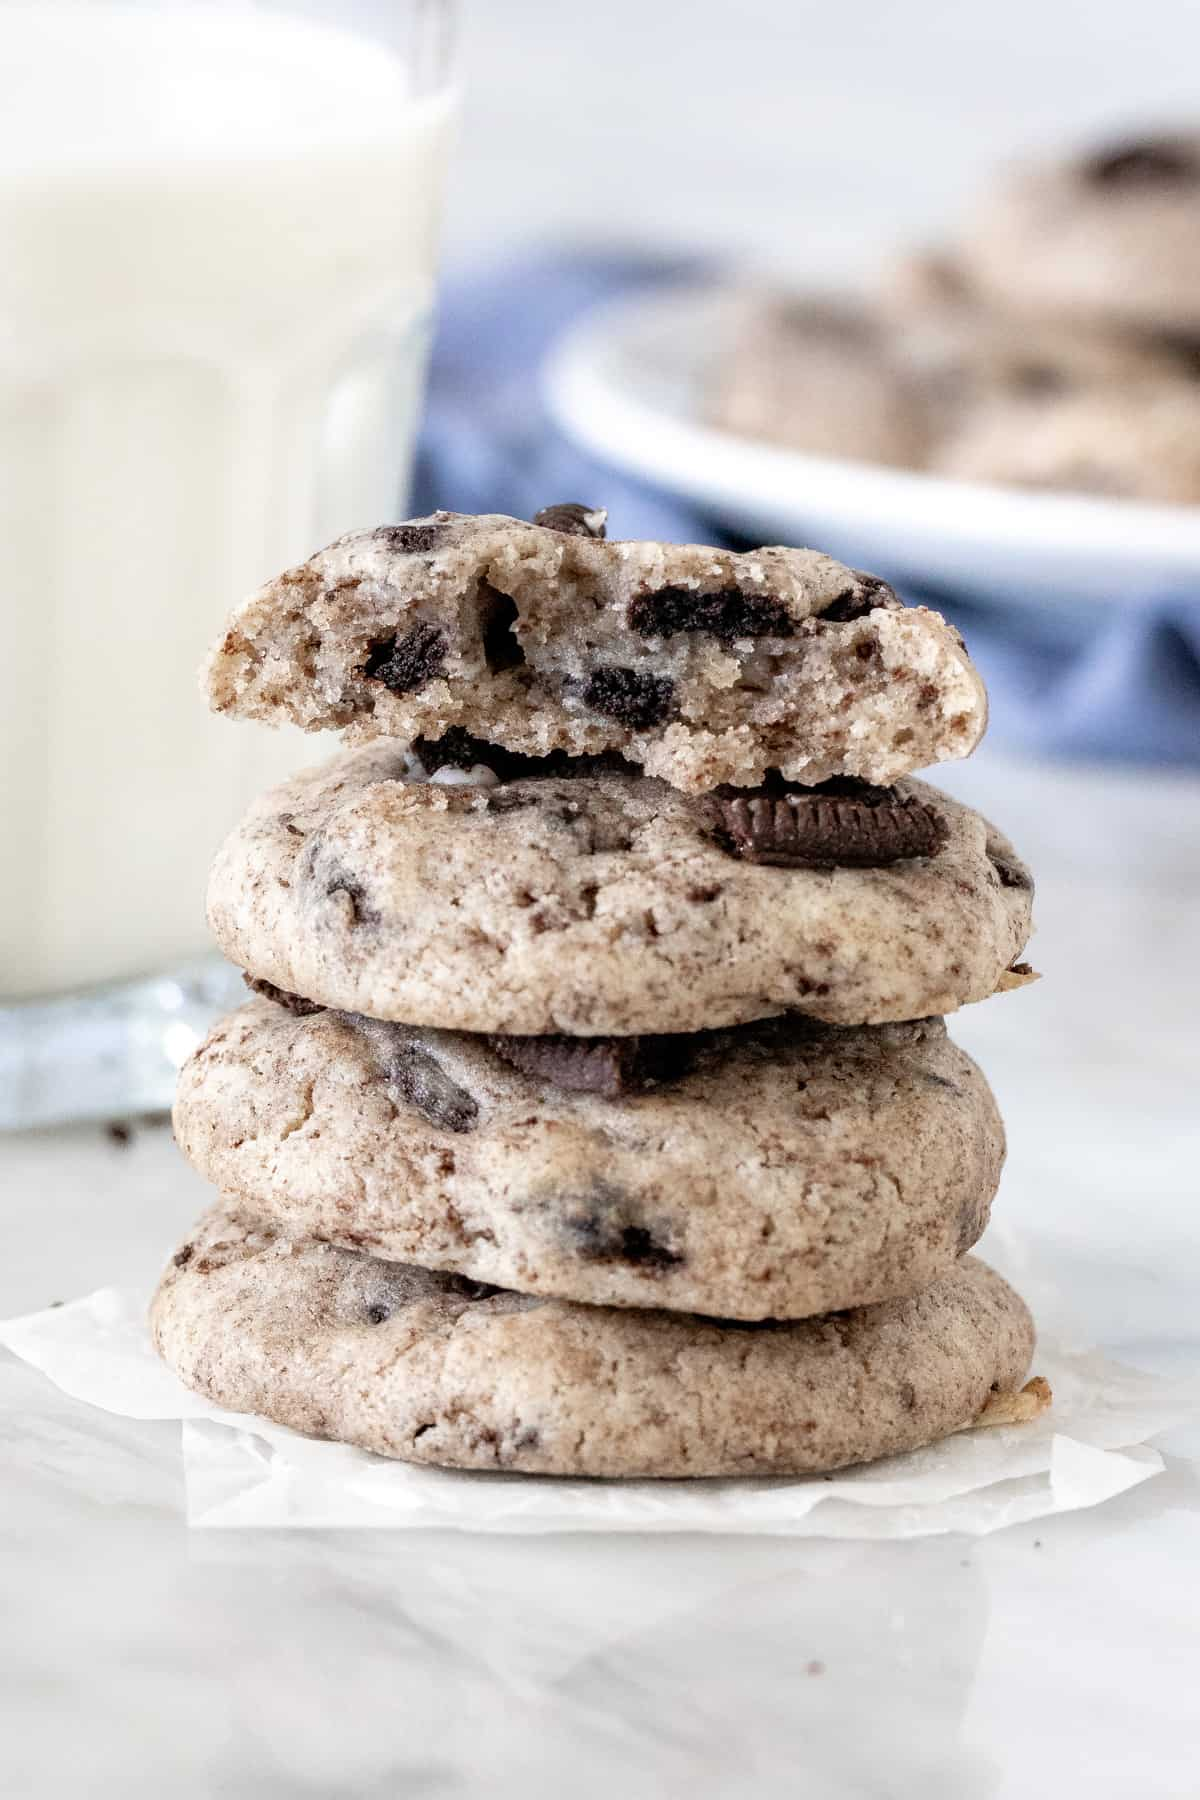 Stack of Oreo cheesecake cookies with the top cookie broken in half.